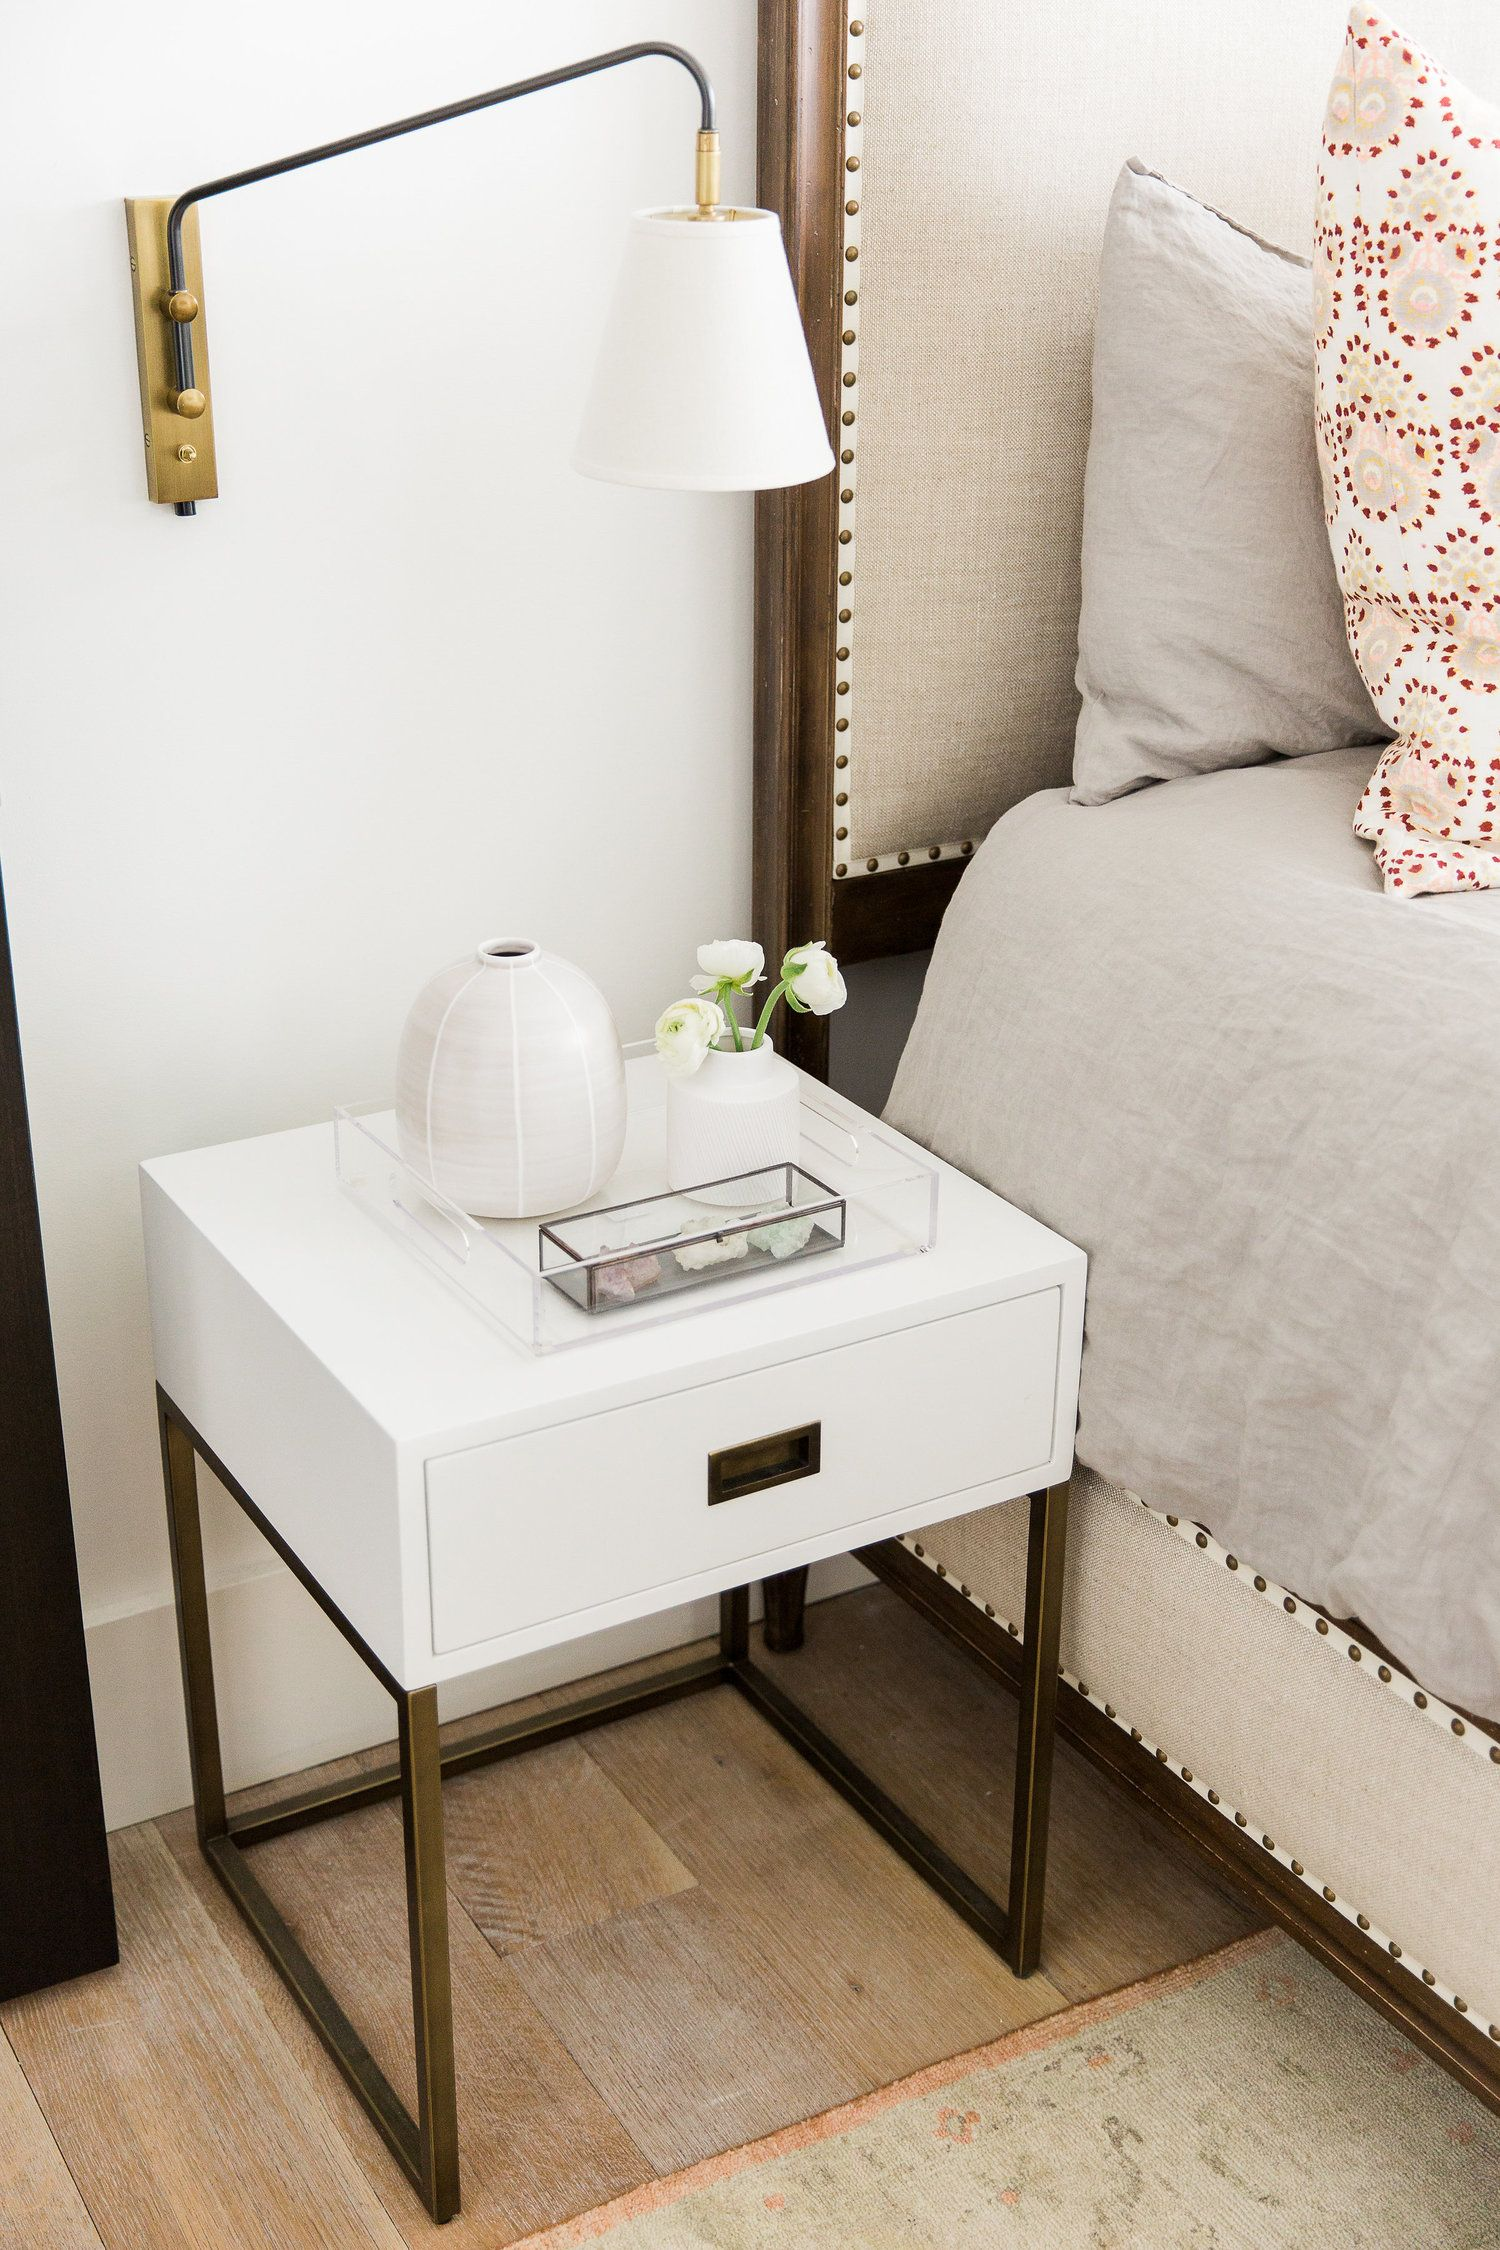 Sconce And Bedside Details Studio Mcgee Modern Bedside Table Sconces Bedroom Modern Mountain Home